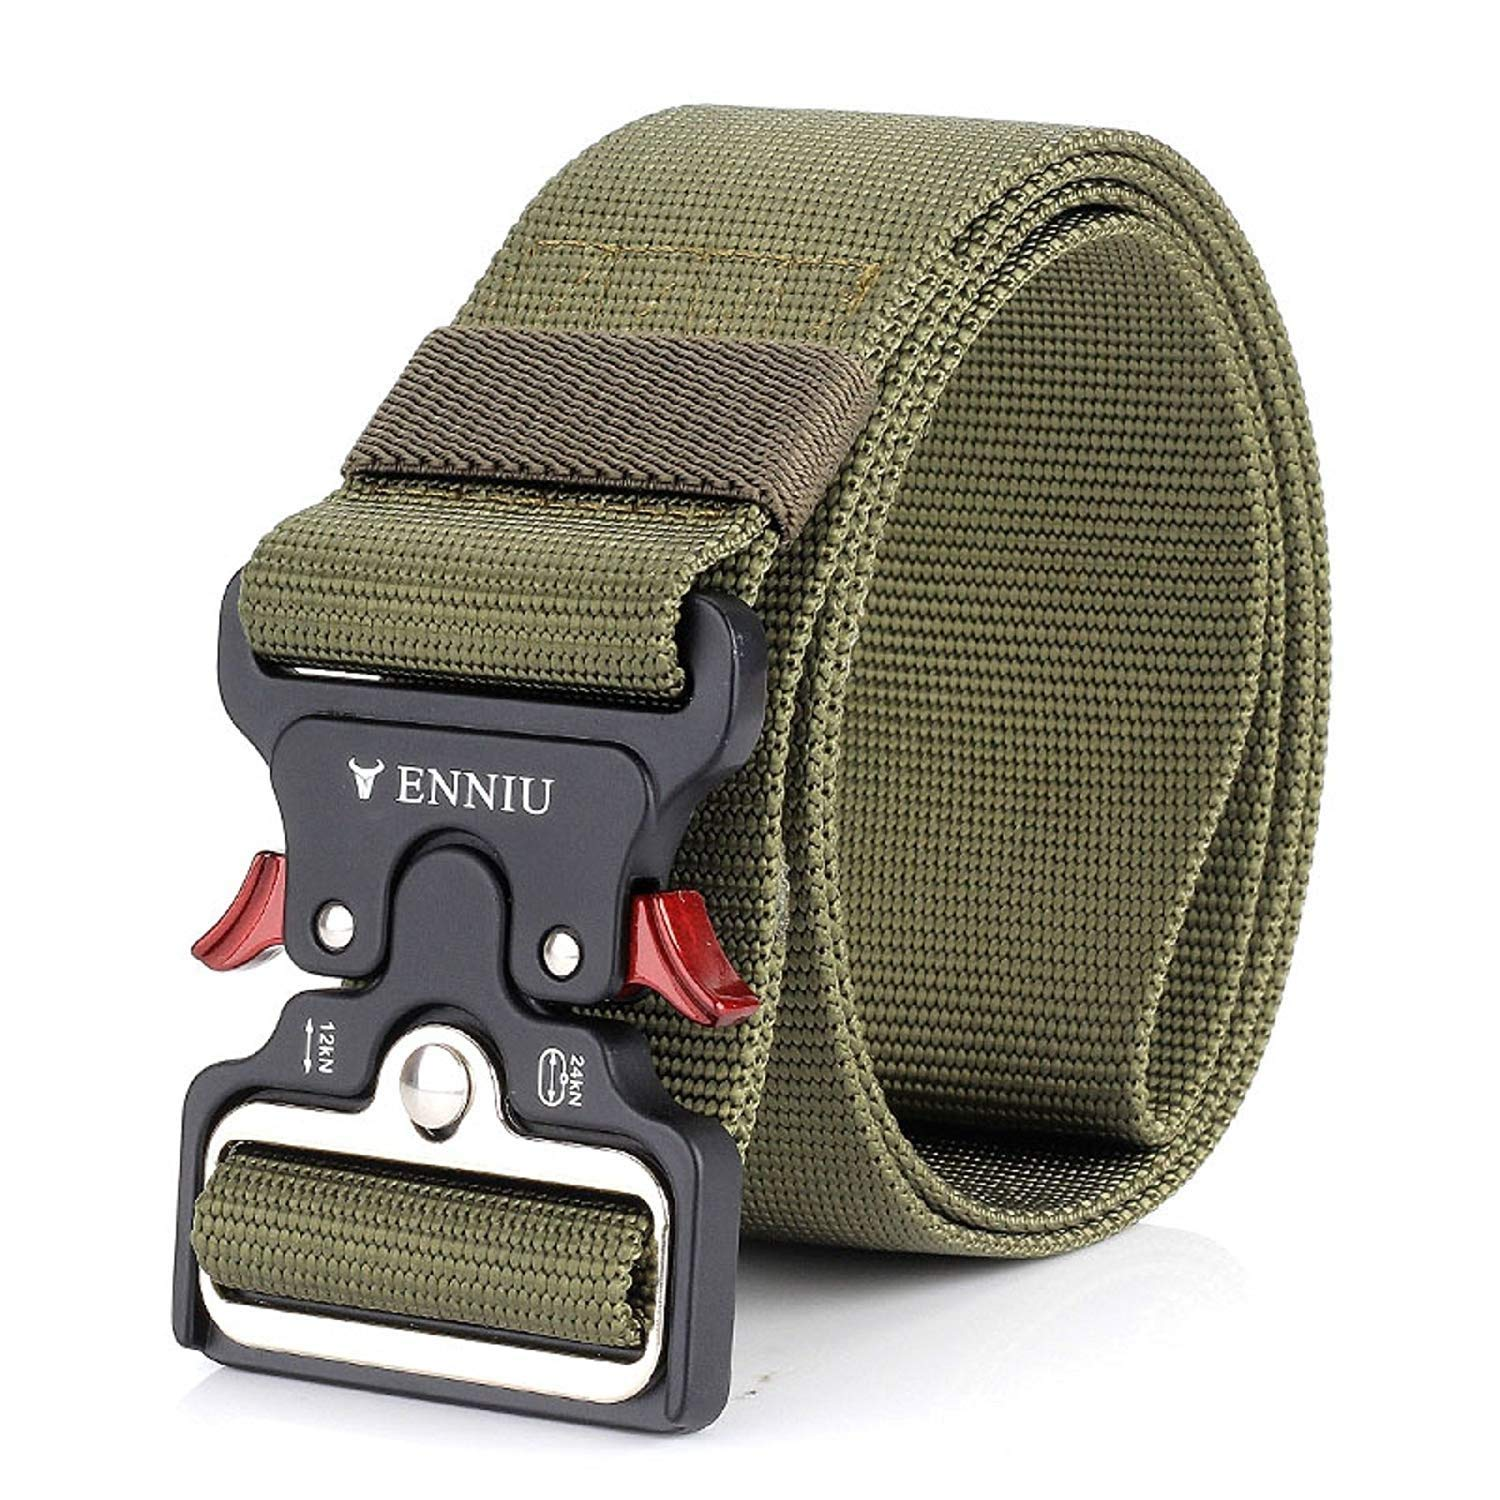 Outdoor Classic,Quick Dry XUEXUE Mens Outdoor Belt,Nylon Military Automatic Buckle Belt,Outdoor Durable Wide Waist Belt ,Convenient for Hiking//Camping Color : E, Size : 125cm